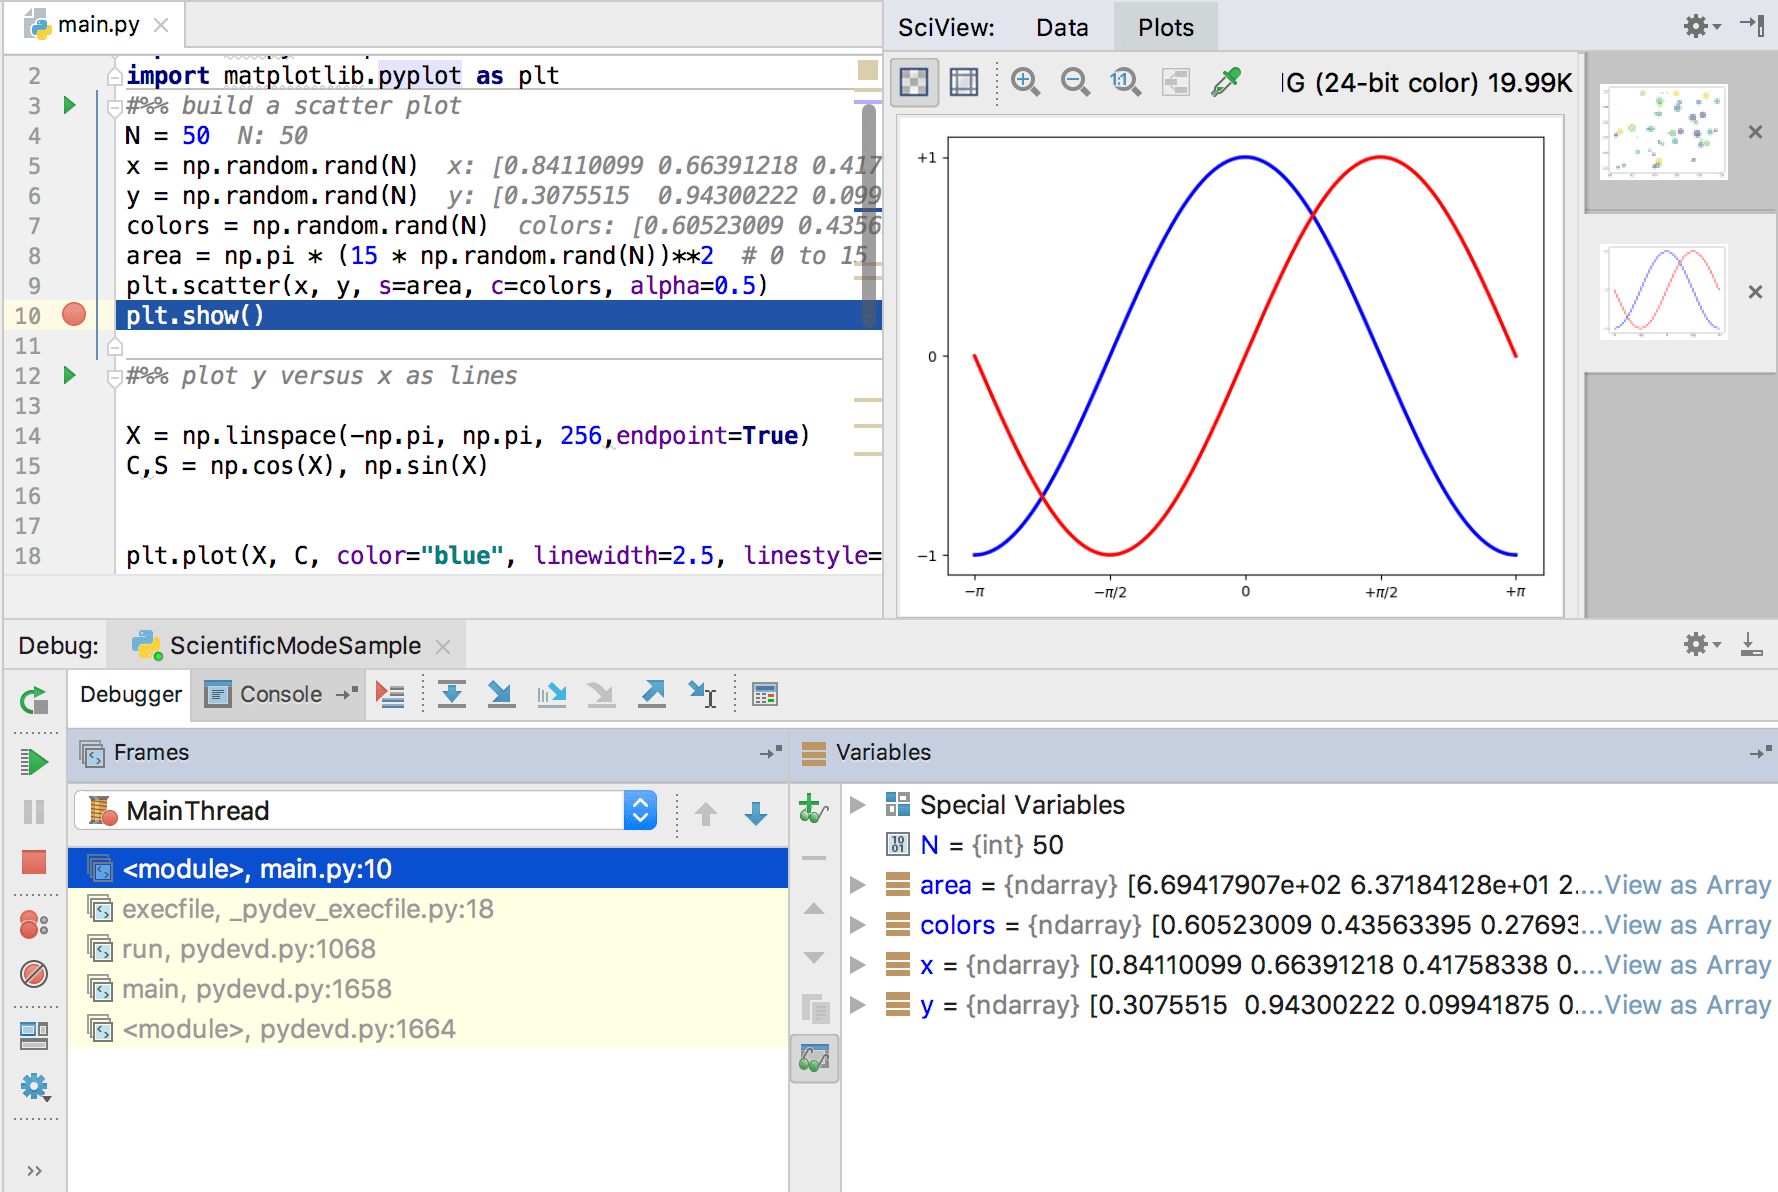 Debugging the matplotlib code